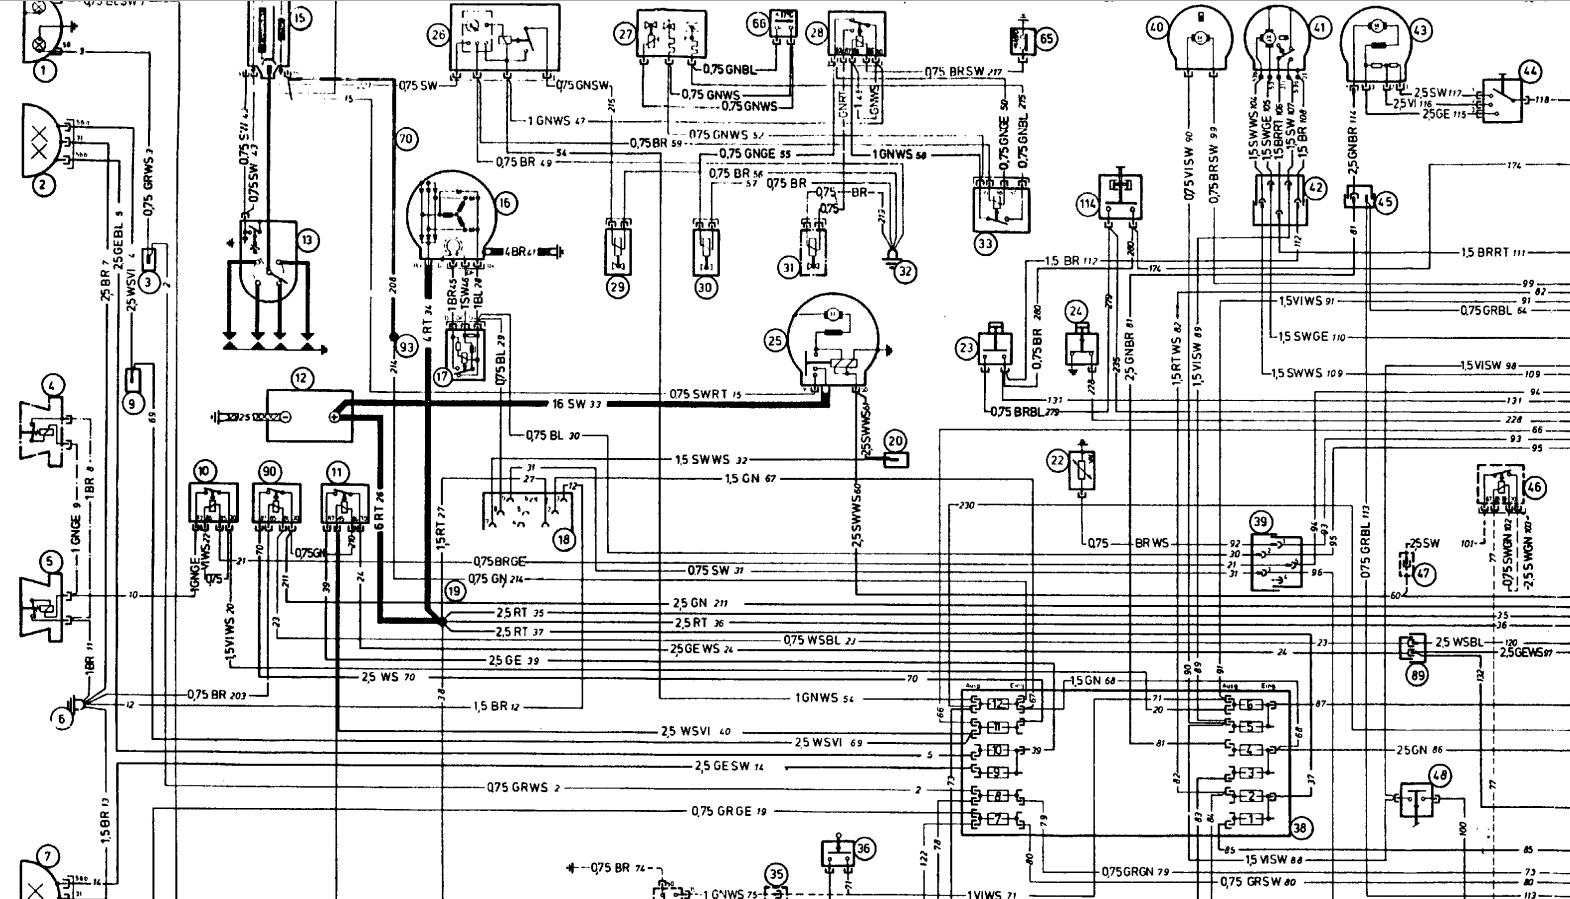 Horn Wiring Diagram Of 76 Electrical Diagrams 1972 Mg Midget For Horns On 2002 Where Does The Wire Connect Into Loom Bmw Car